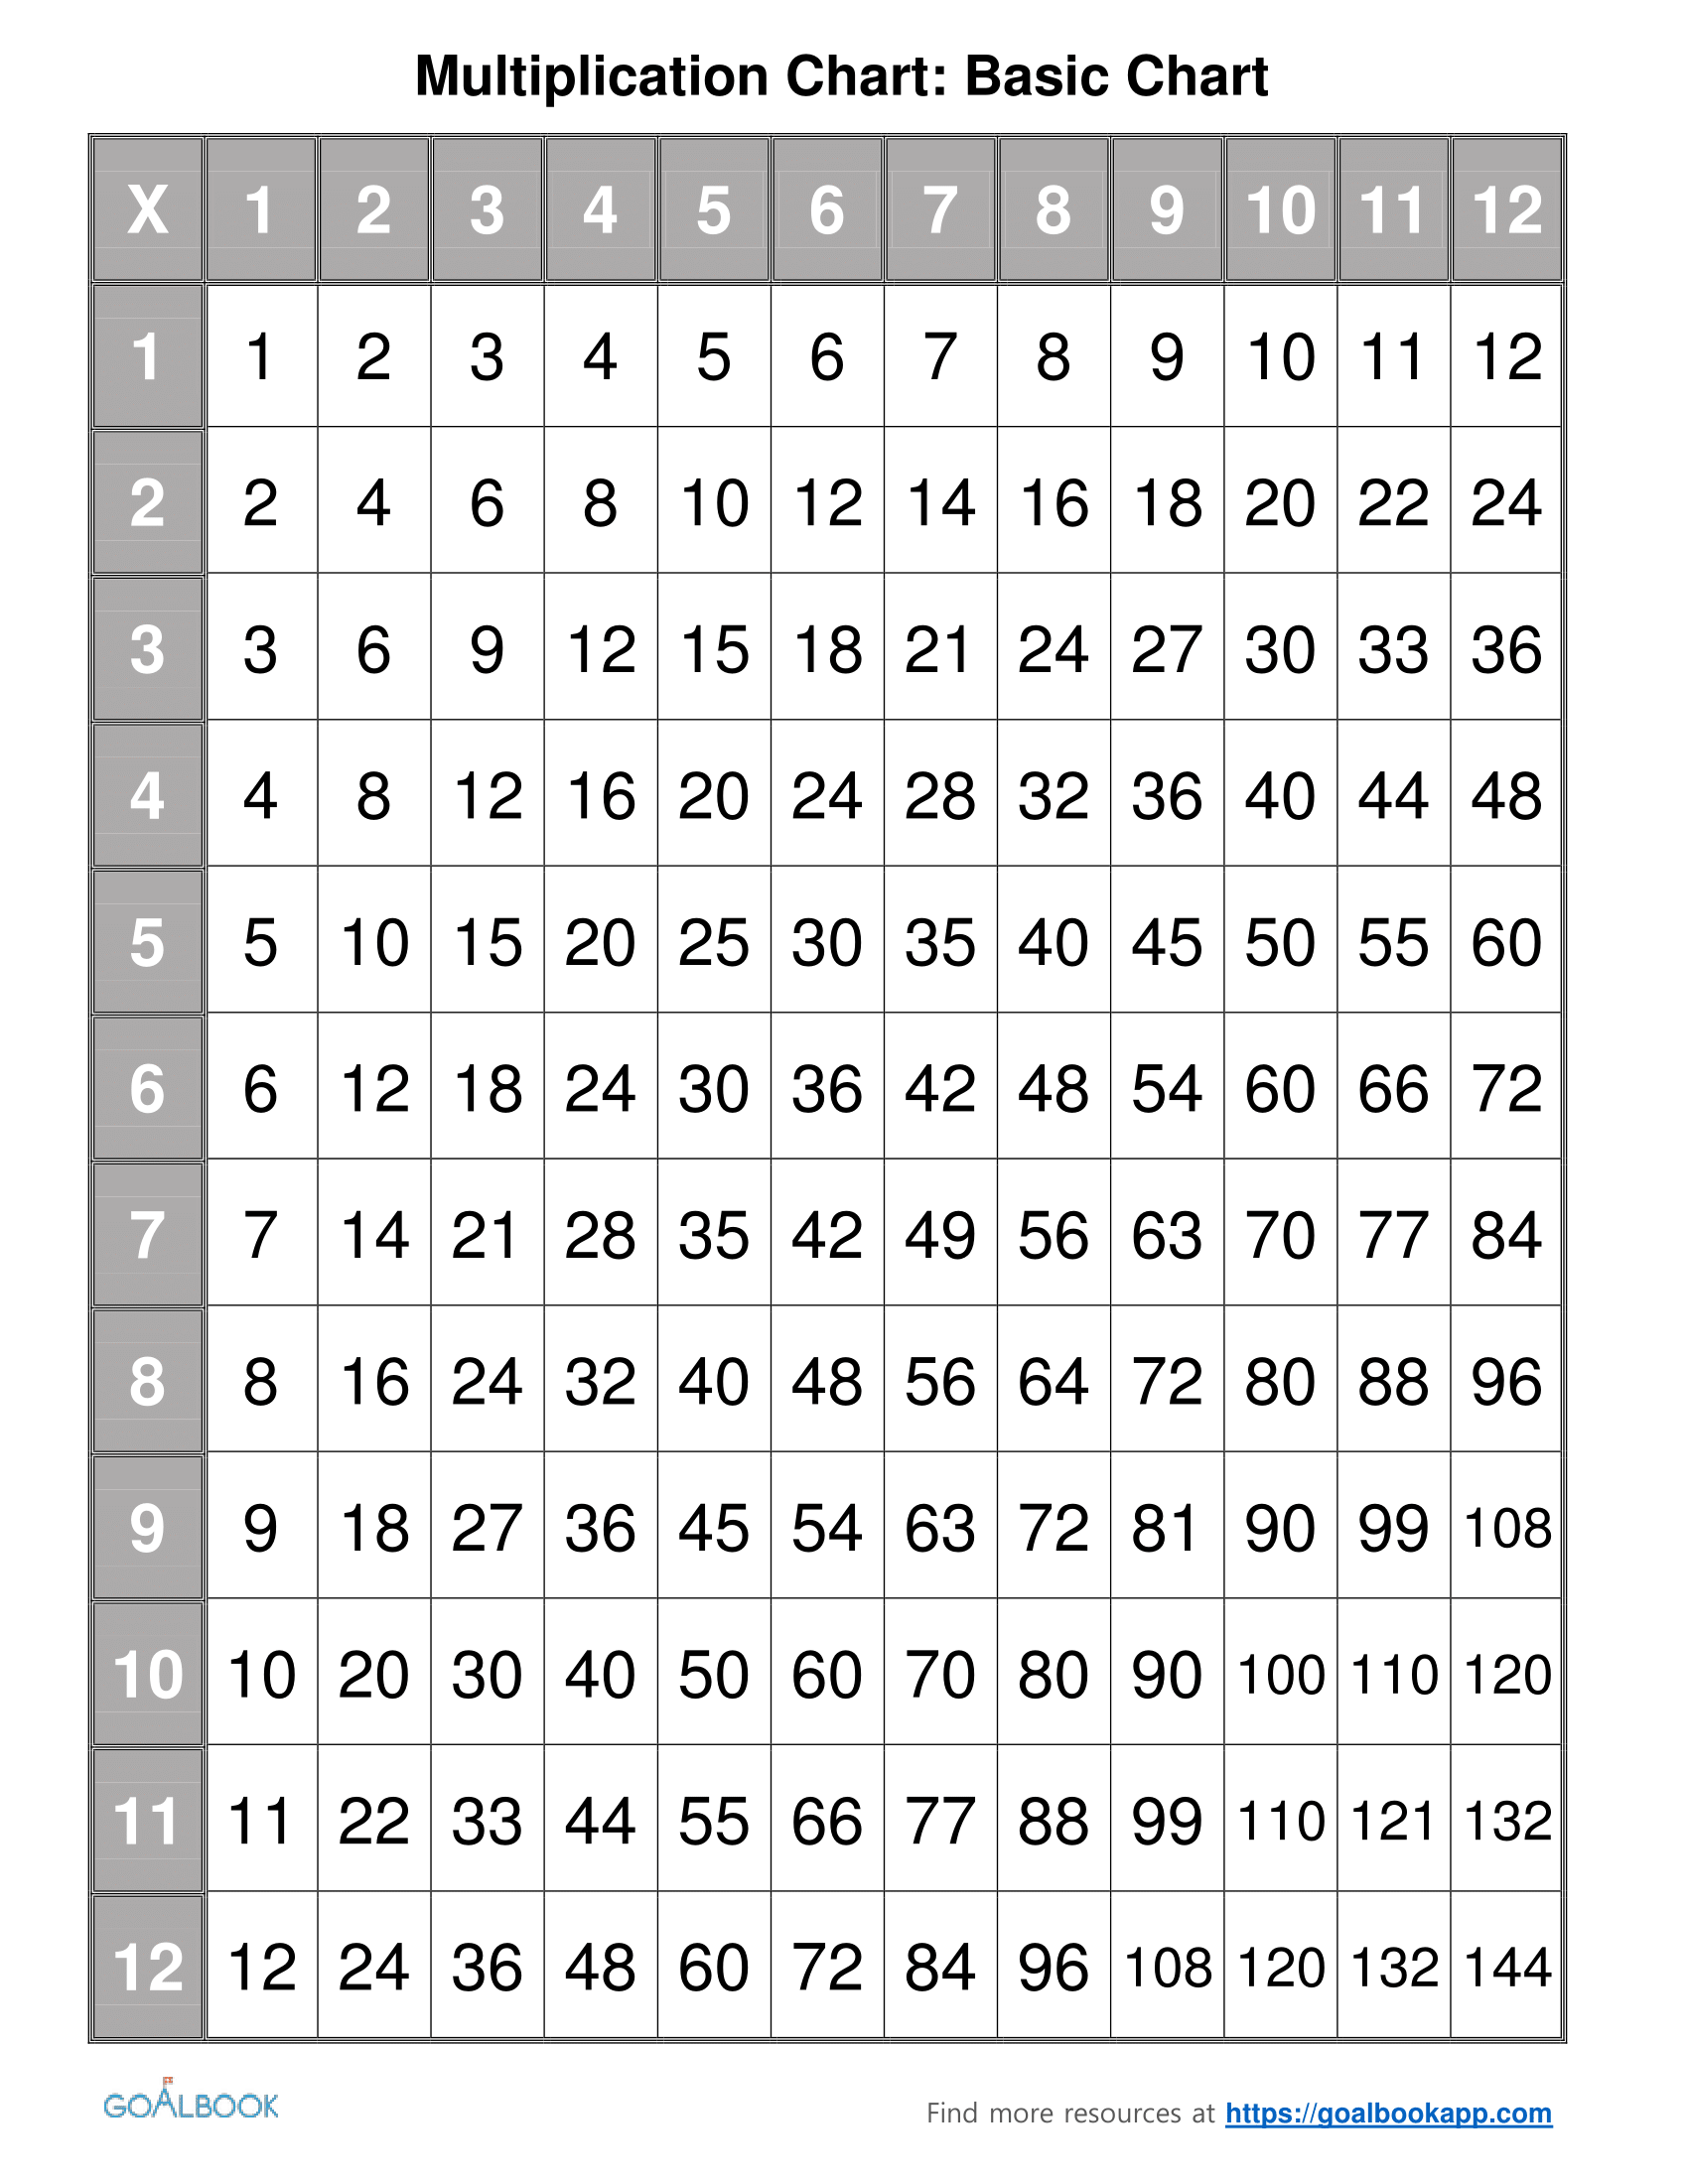 Multiplication chart to 12 blank multiplication chart - Math multiplication tables printable ...